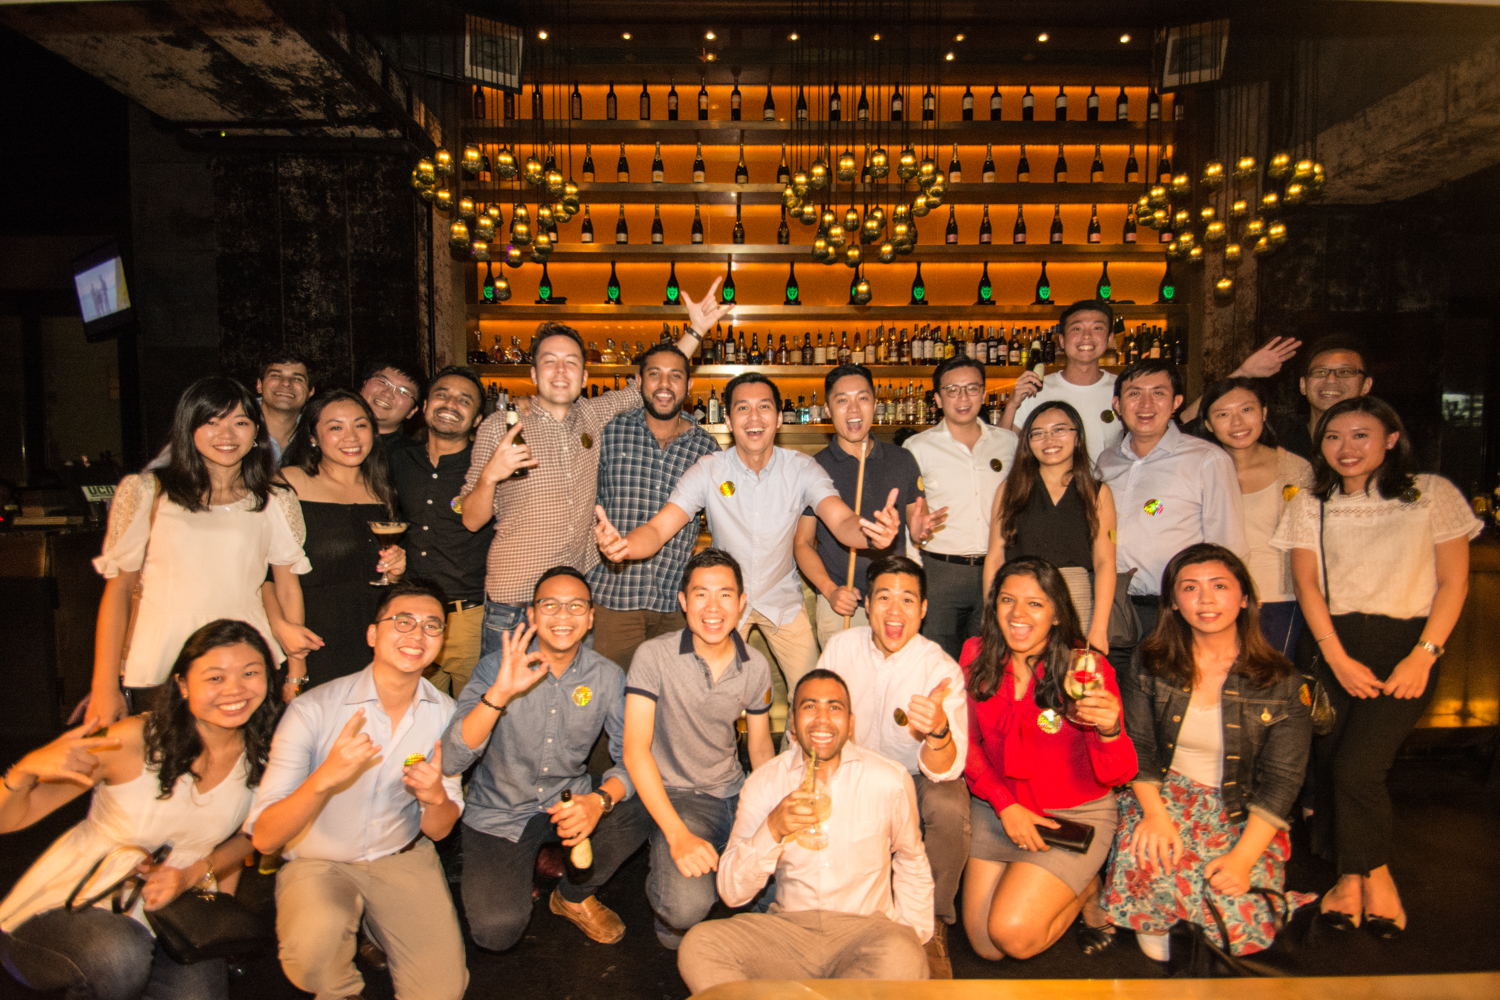 Finance Society Mixer: - October 11 -Finance Society held its first mixer between full-time and part-time members in Central, Hong Kong. It was a great night where members got to know each other over drinks, food and some pool!